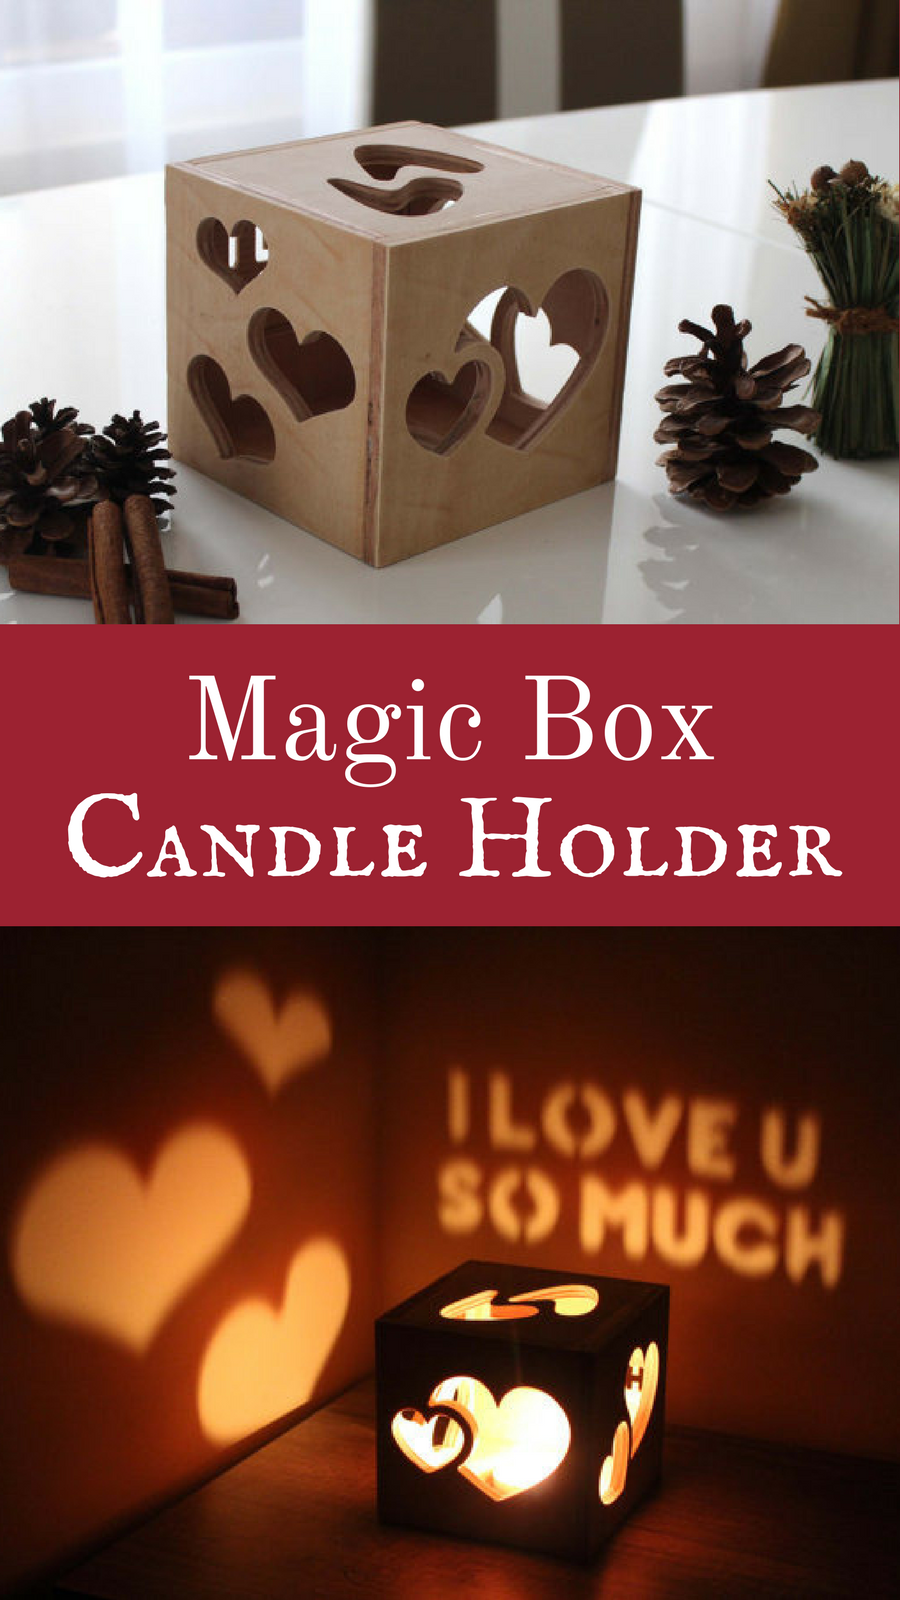 Pretty Cool Wood Box Candle Holder Love The Details And It Looks Chocolate Fuse Great Night